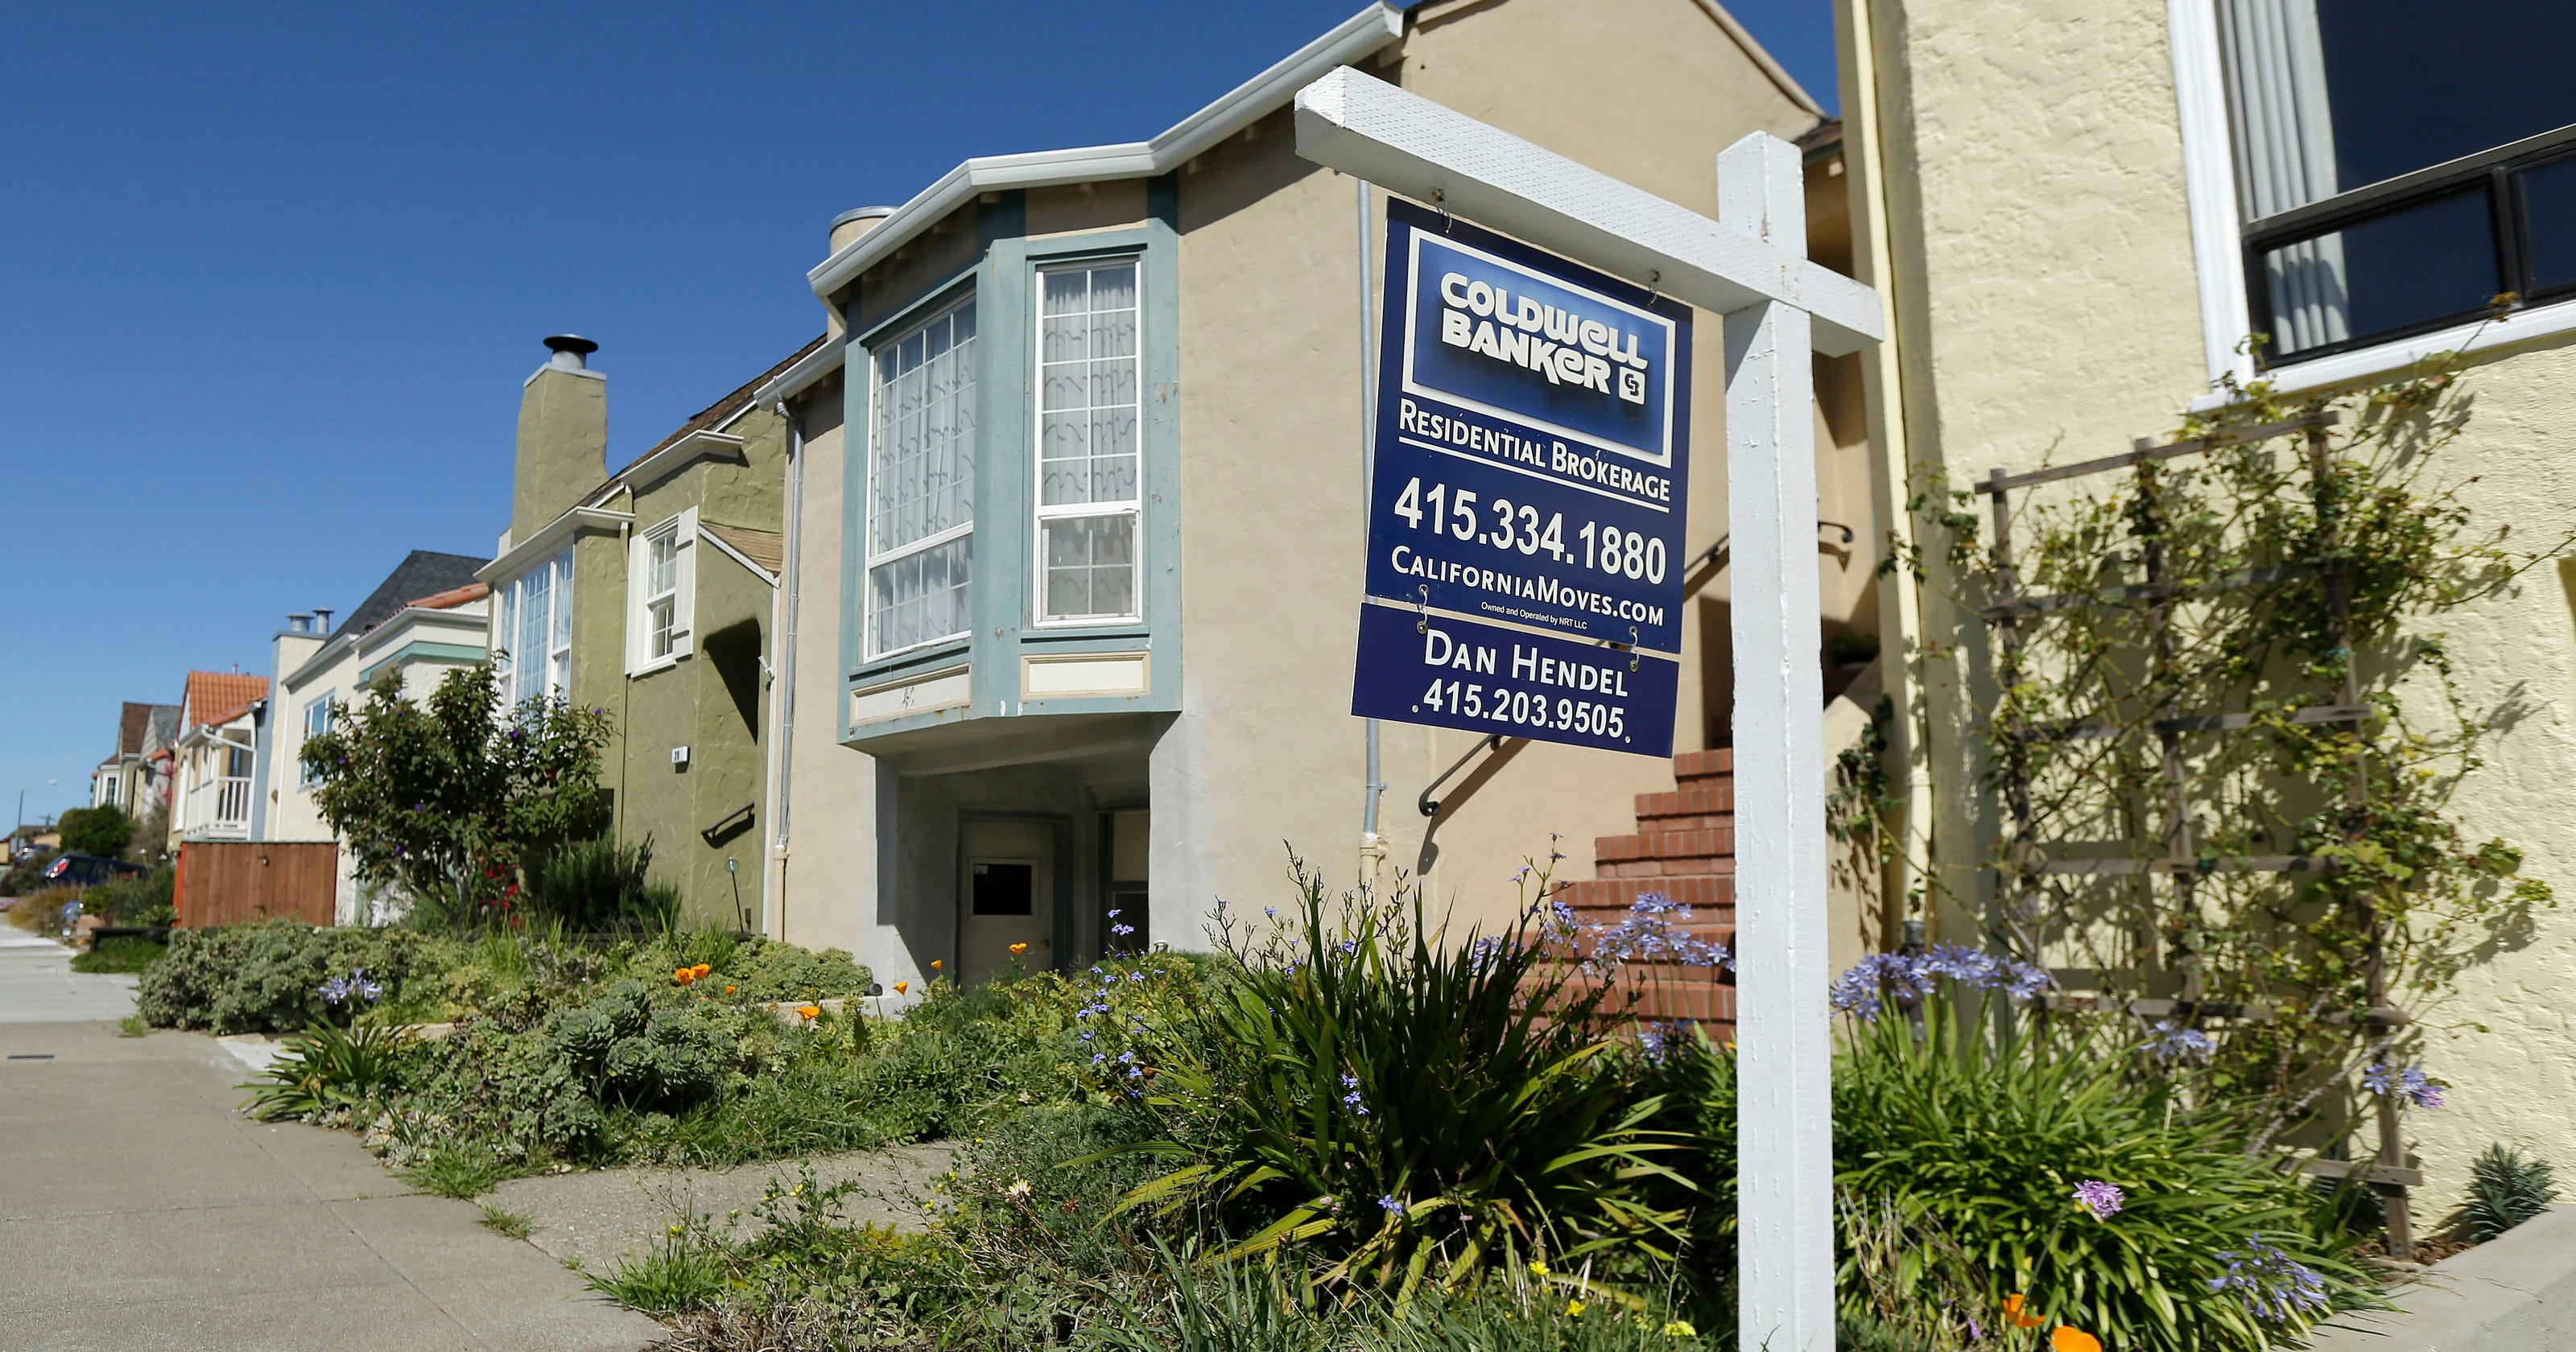 Existing home sales fall three months in row